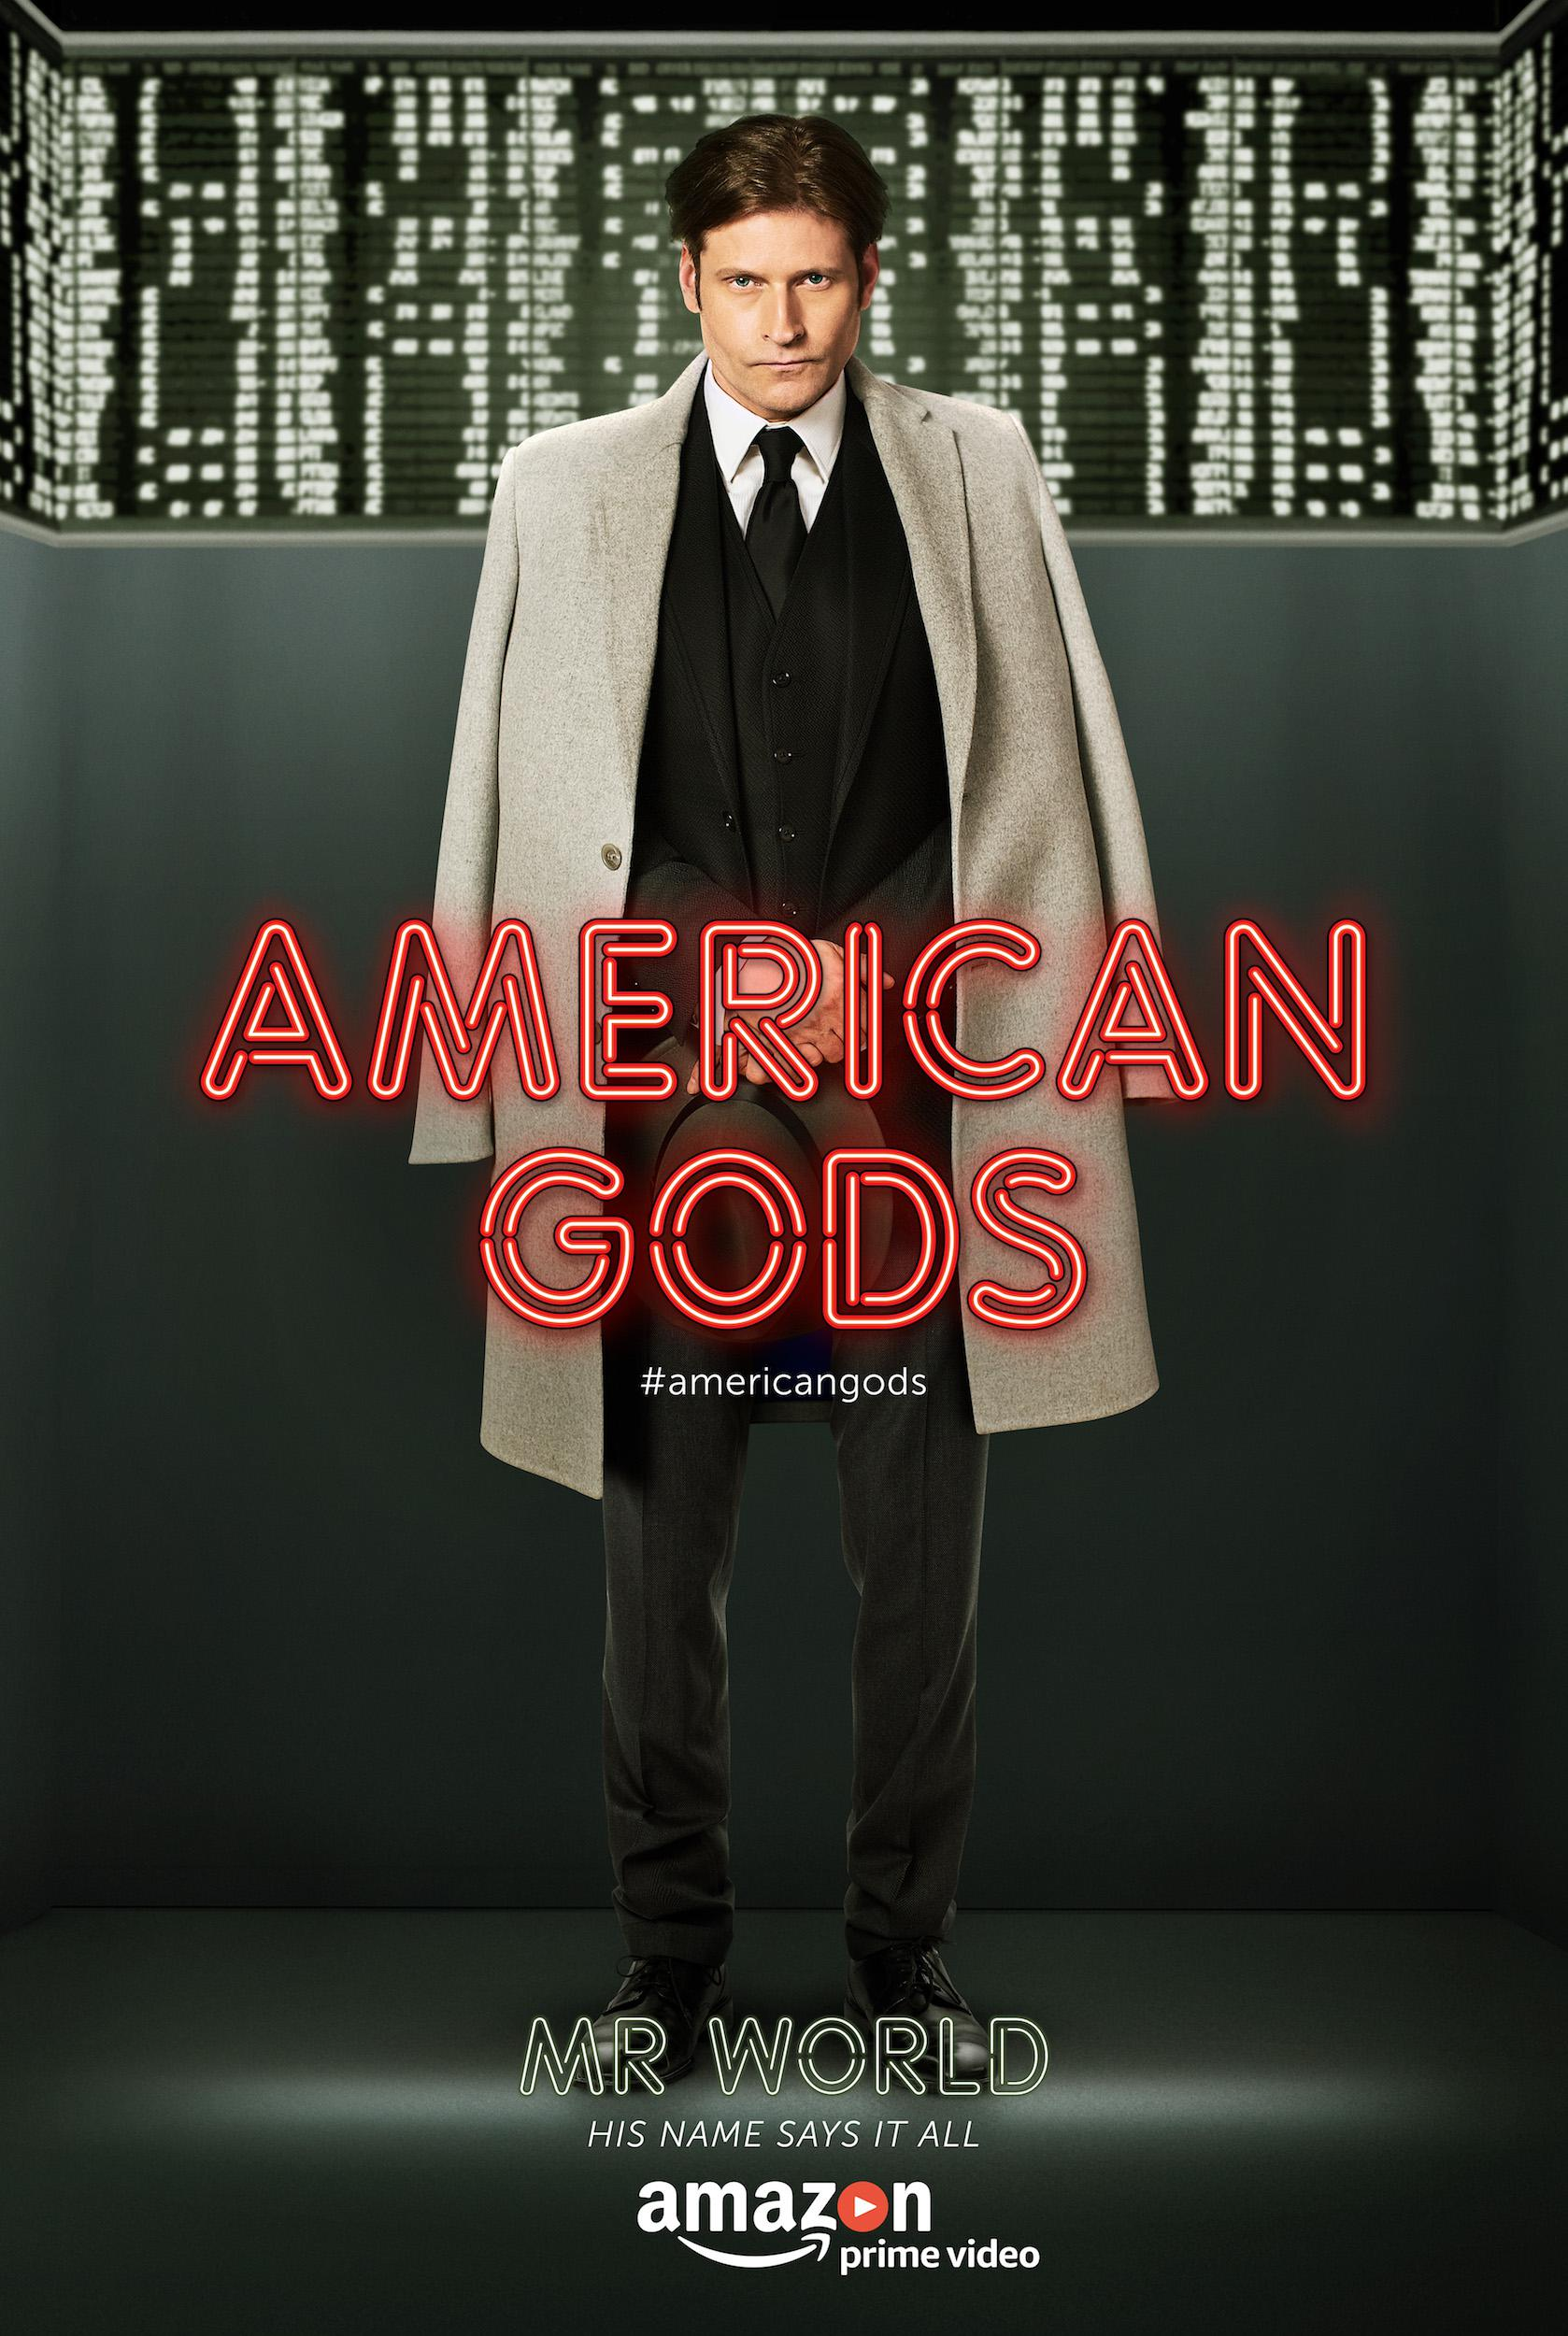 American Gods - Series - Crispin Glover as Mr. World